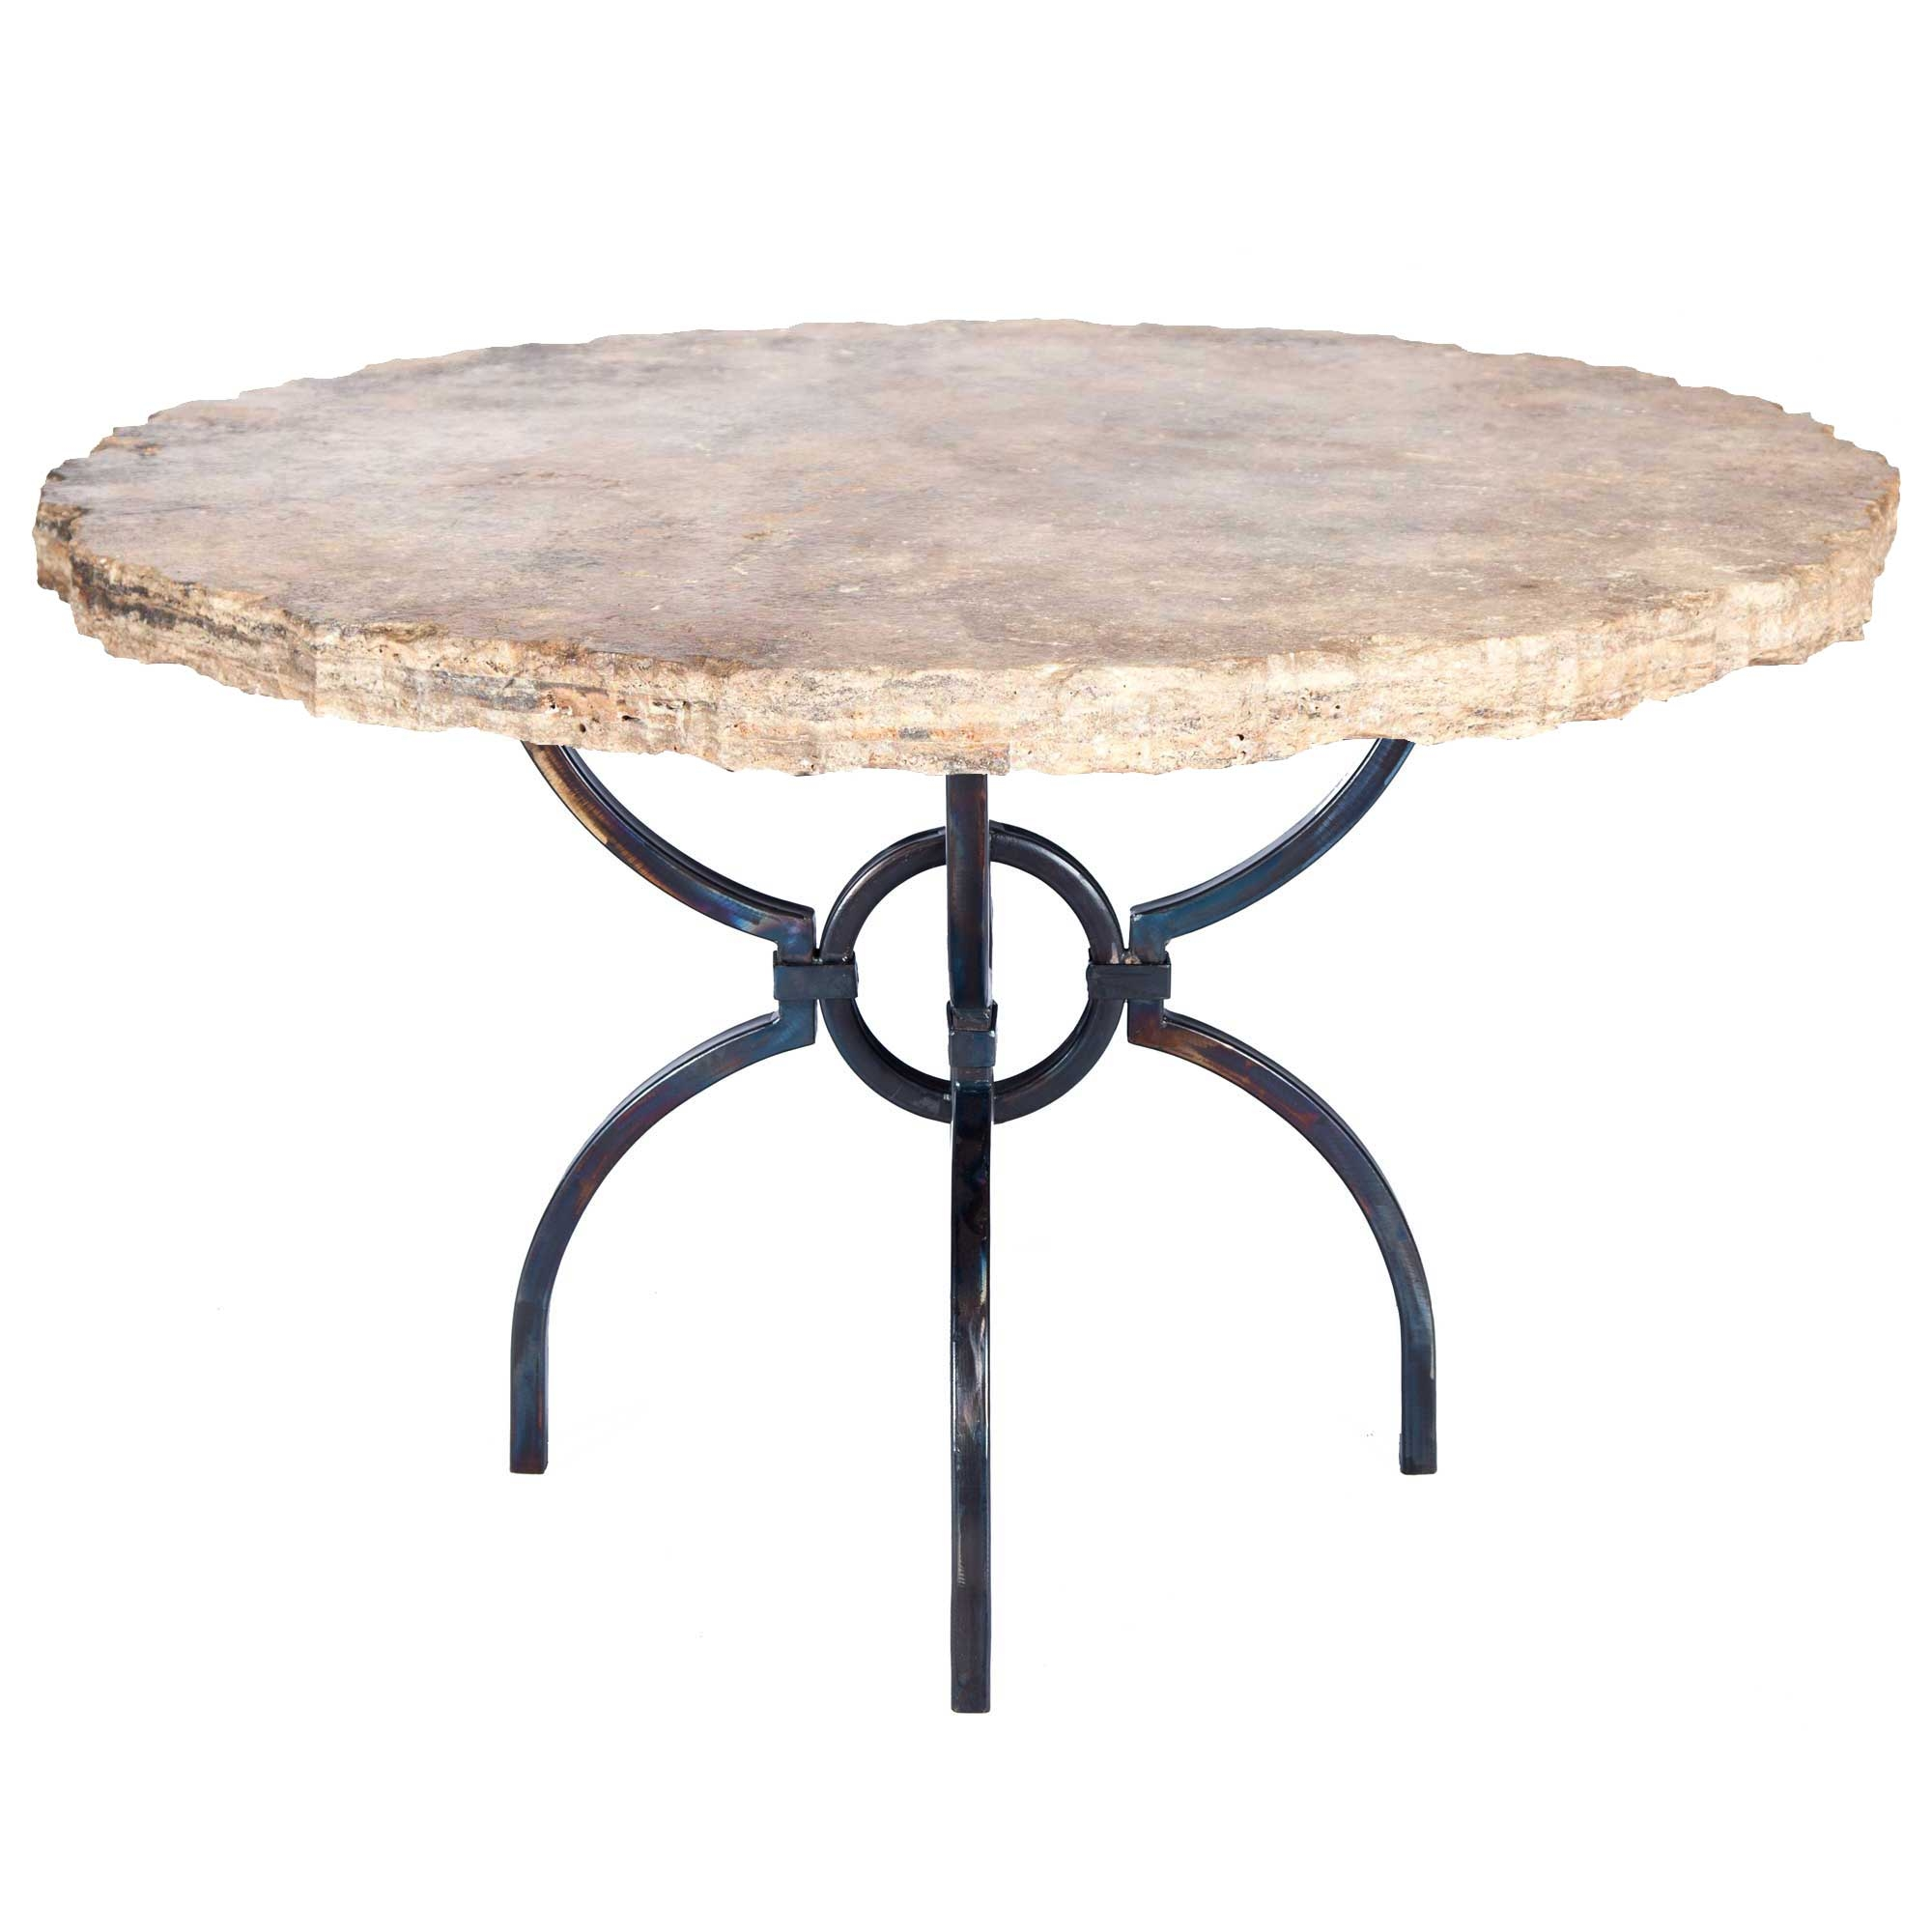 Logan Iron Dining Table with 48 Round Marble Top